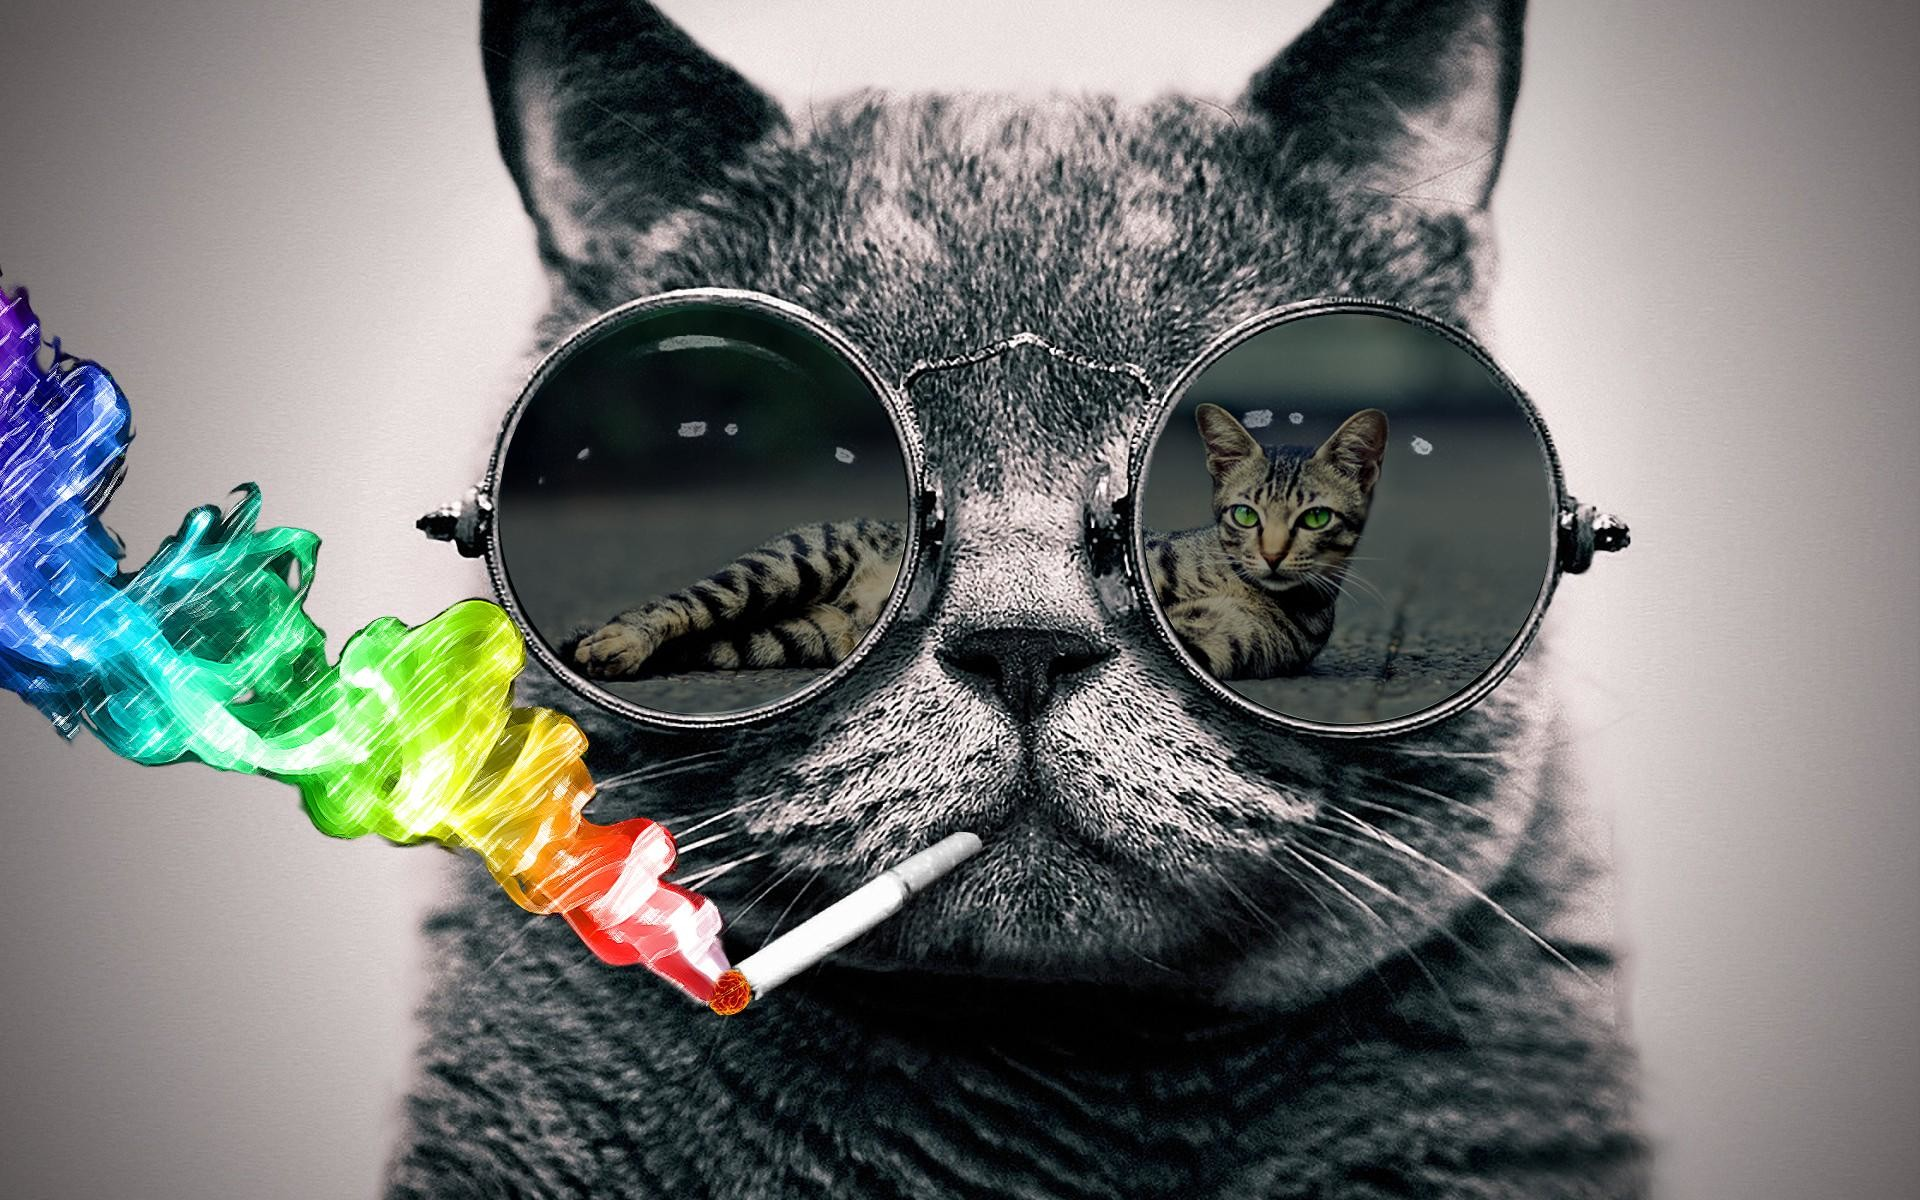 Cat with sunglasses wallpaper (Photoshop) – rank them please